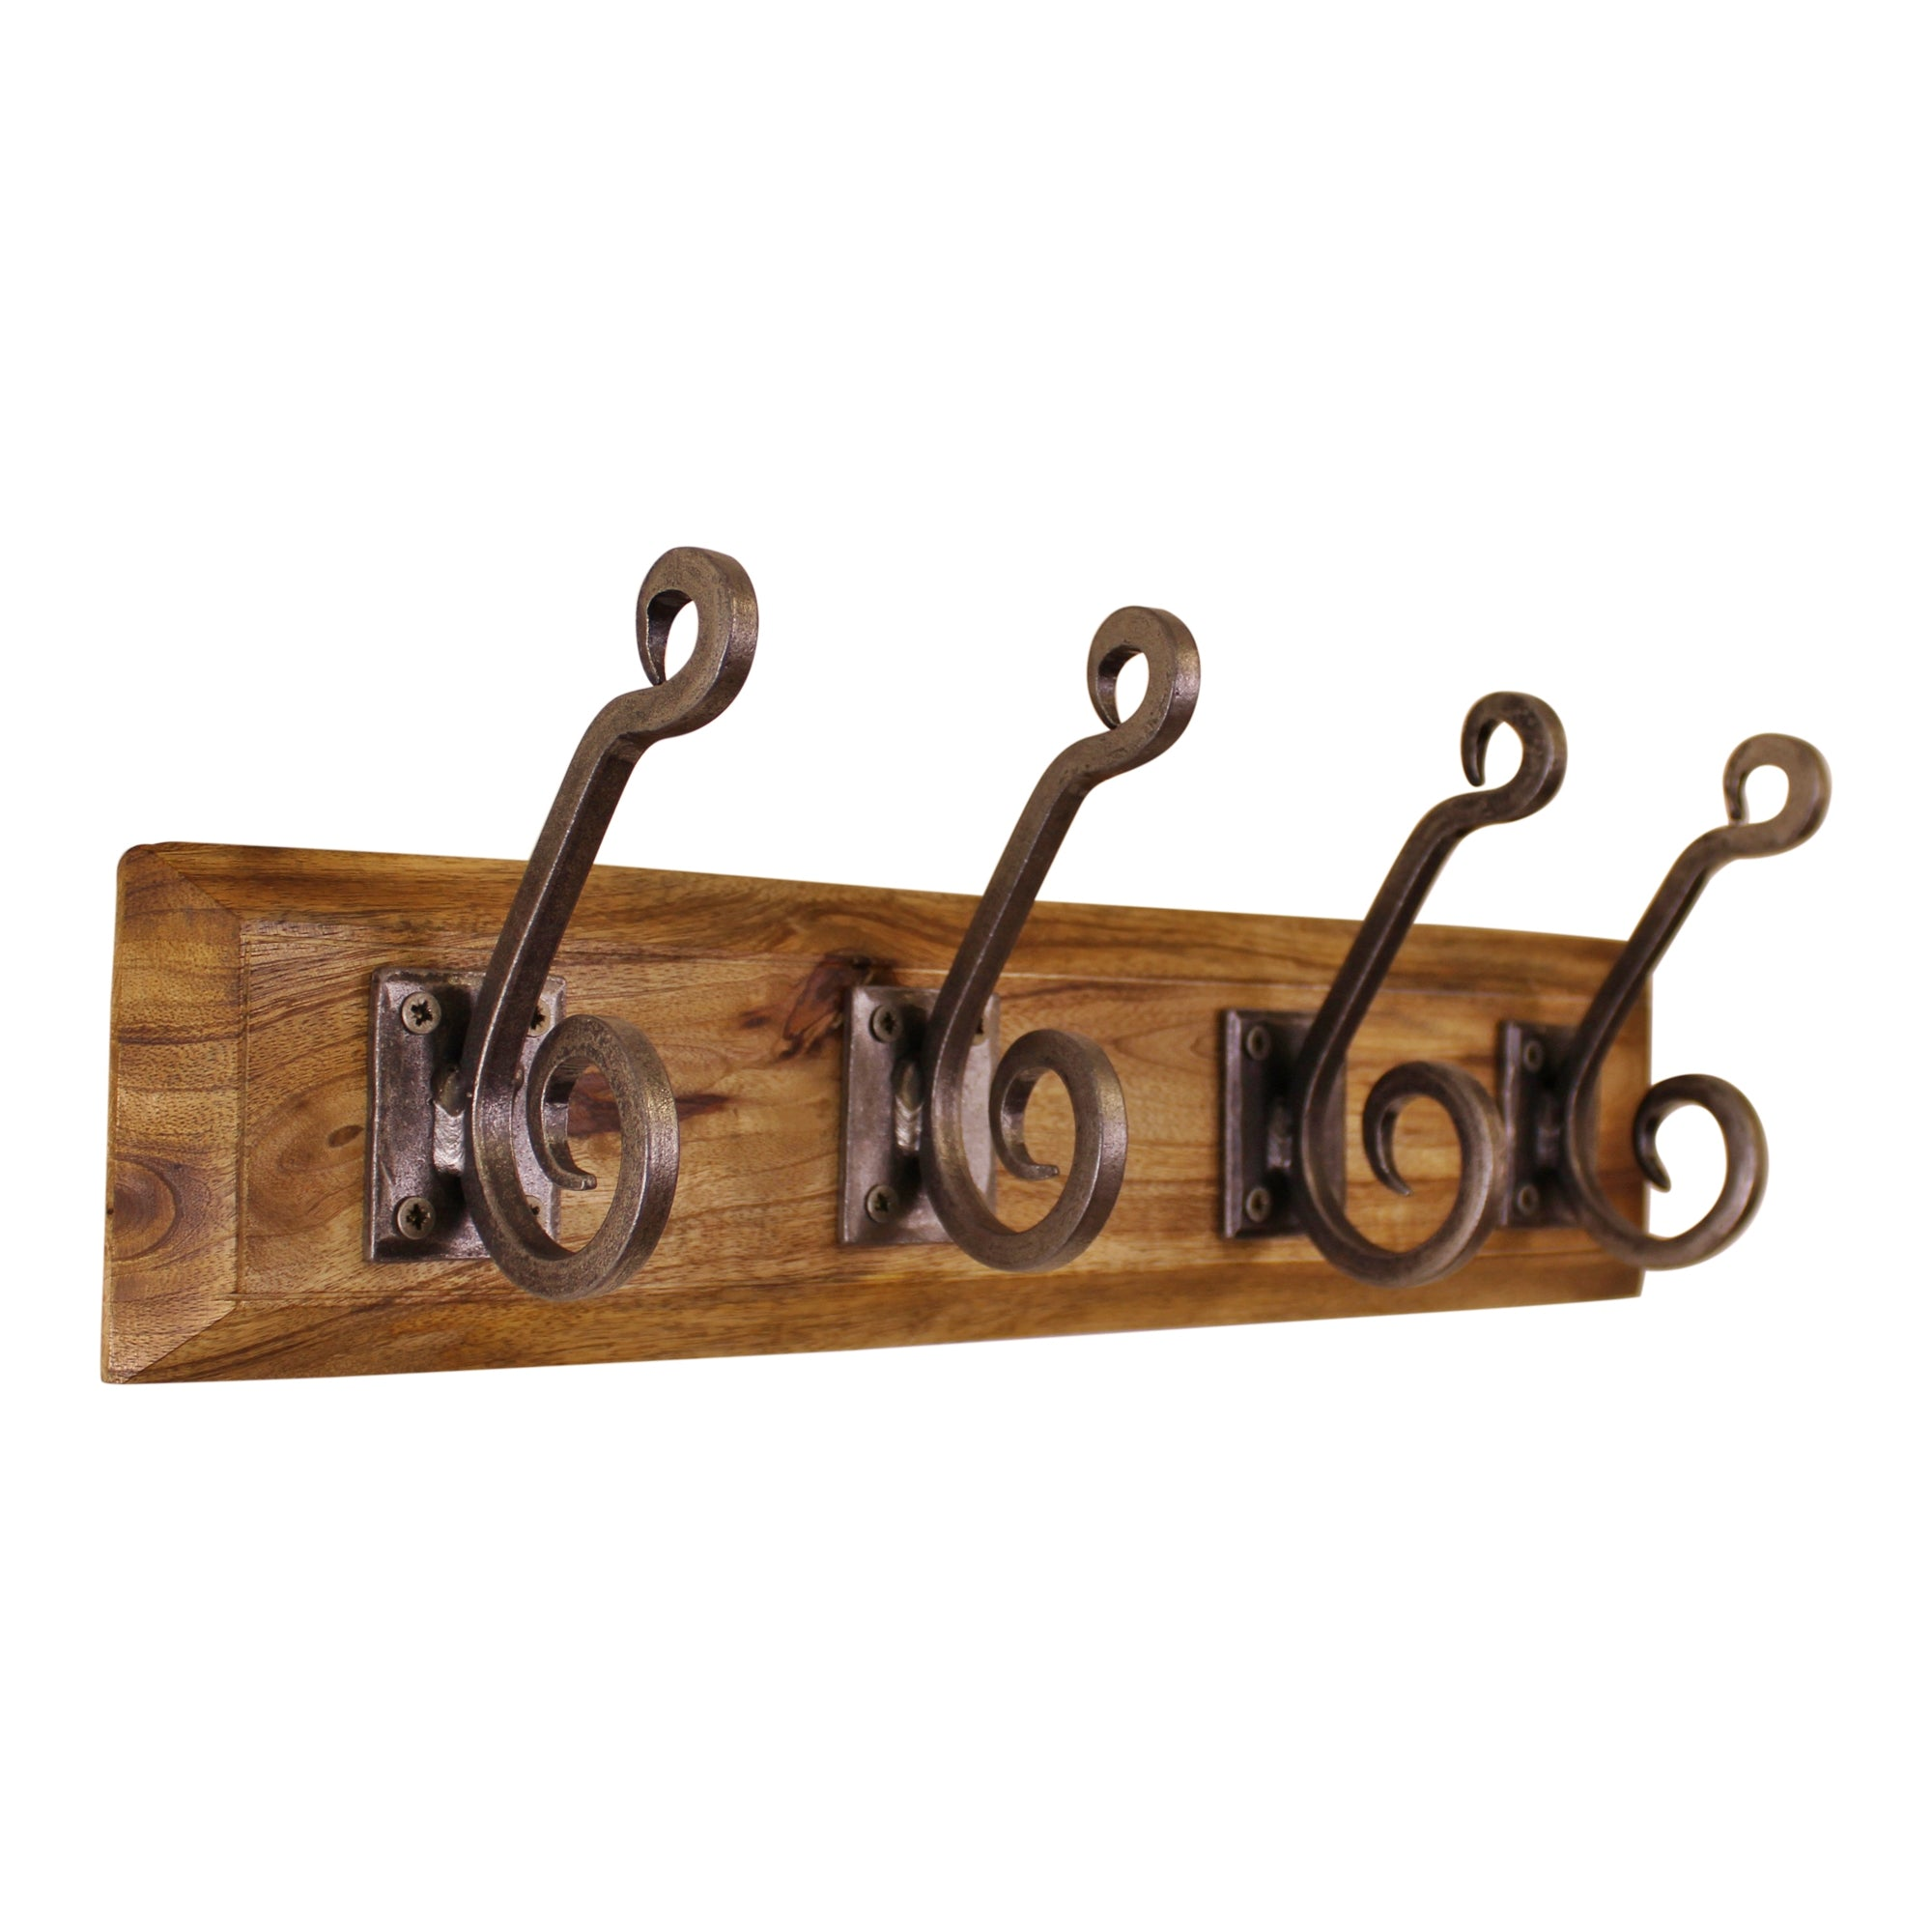 4 Piece Double Metal Hooks On Wooden Base-Decor-The Modern Home Shop